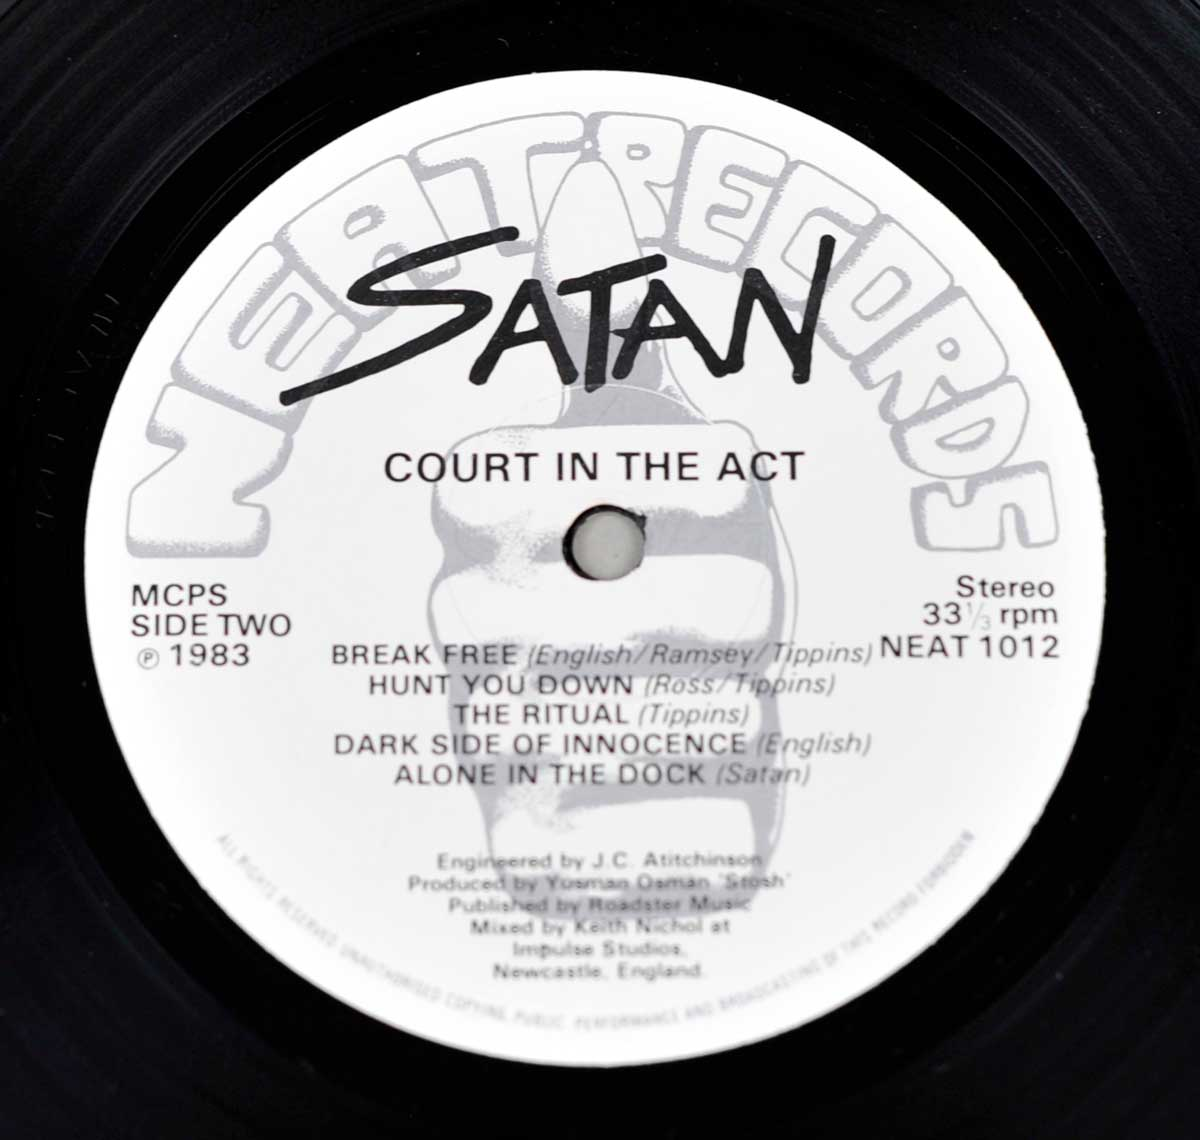 Enlarged High Resolution Photo of the Record's label SATAN Court in The Act  https://vinyl-records.nl